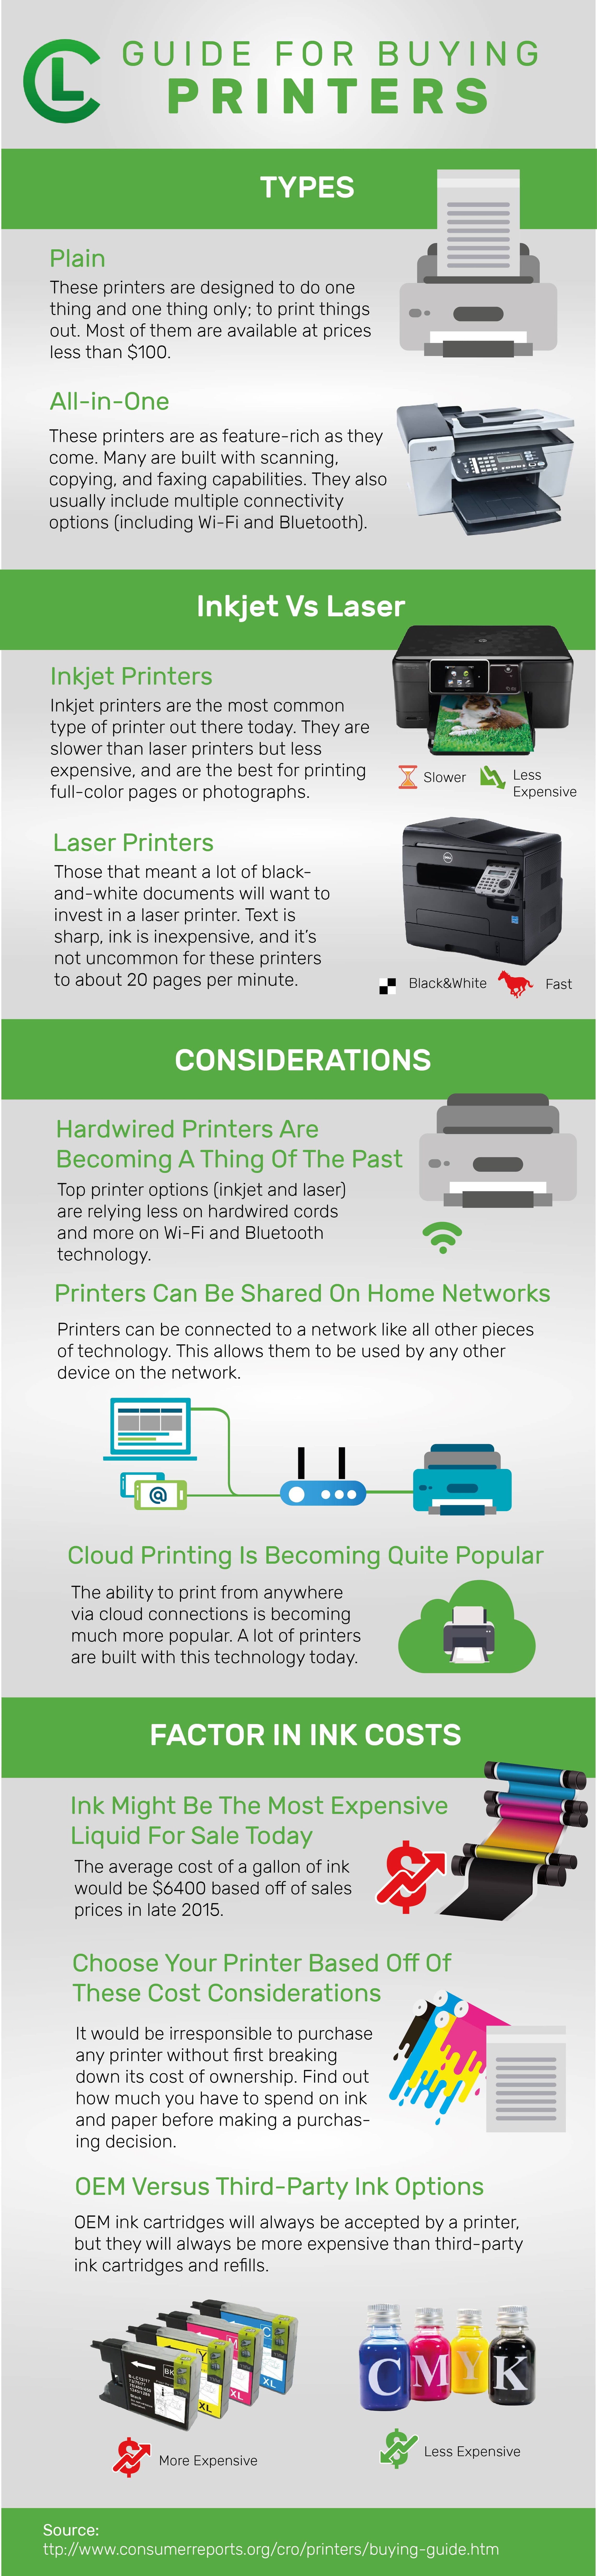 Guide For Buying Printers Infographic